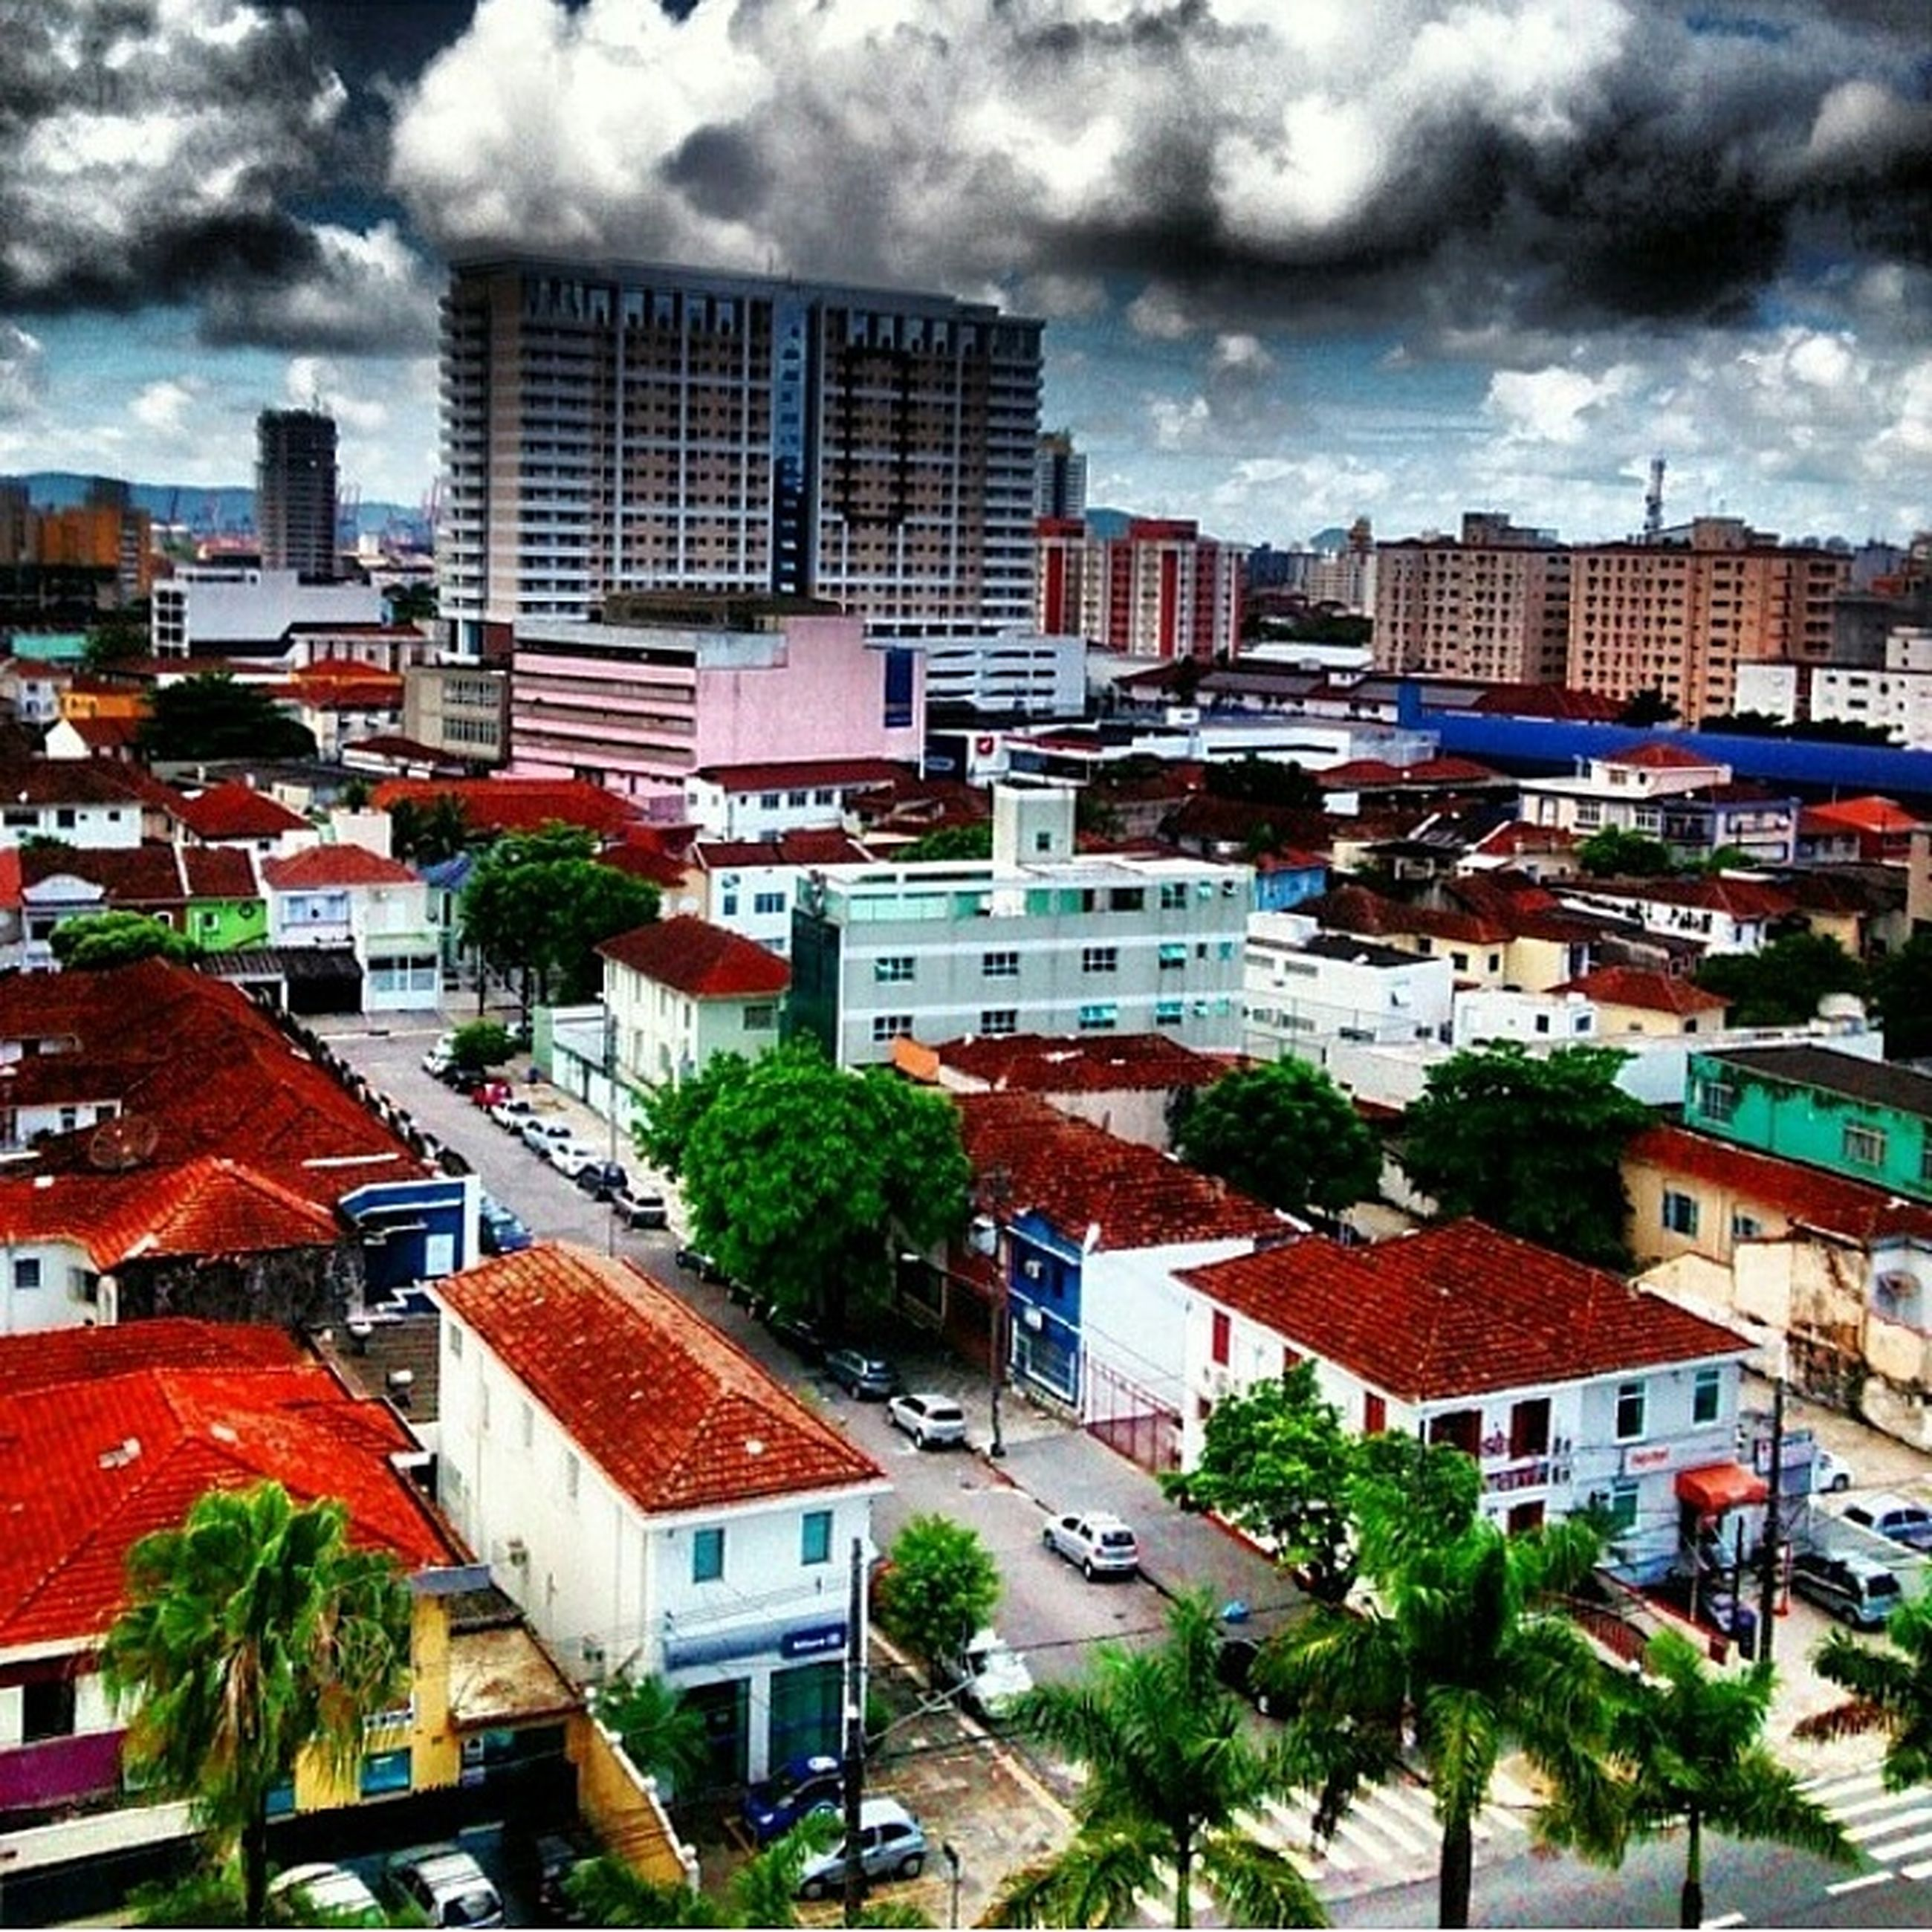 building exterior, architecture, built structure, sky, city, cloud - sky, cloudy, residential district, residential building, cityscape, residential structure, cloud, house, high angle view, tree, building, crowded, city life, outdoors, day